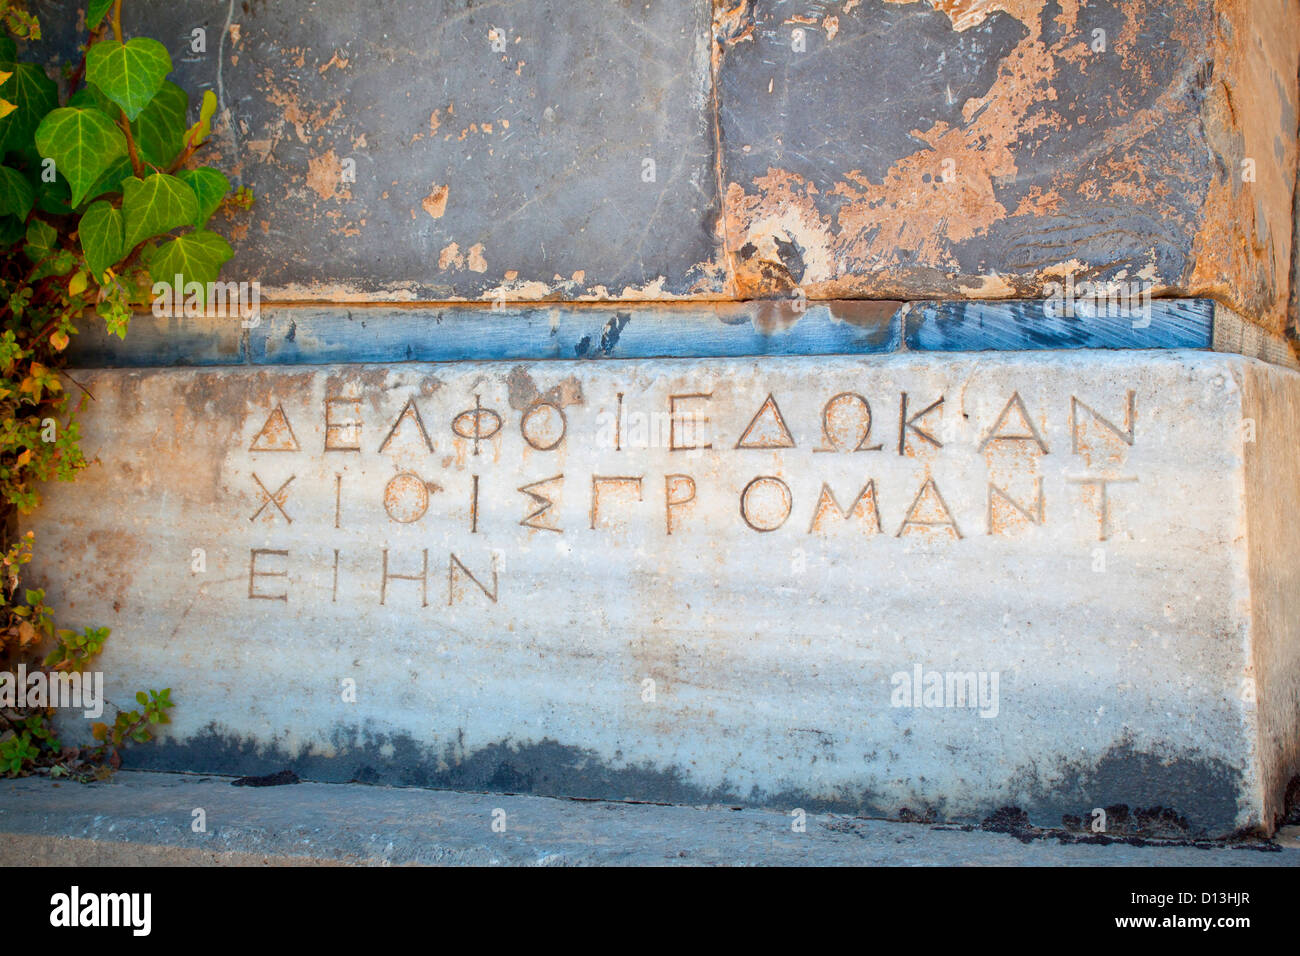 Ancient greek epigraph at Delphi oracle in Greece Stock Photo